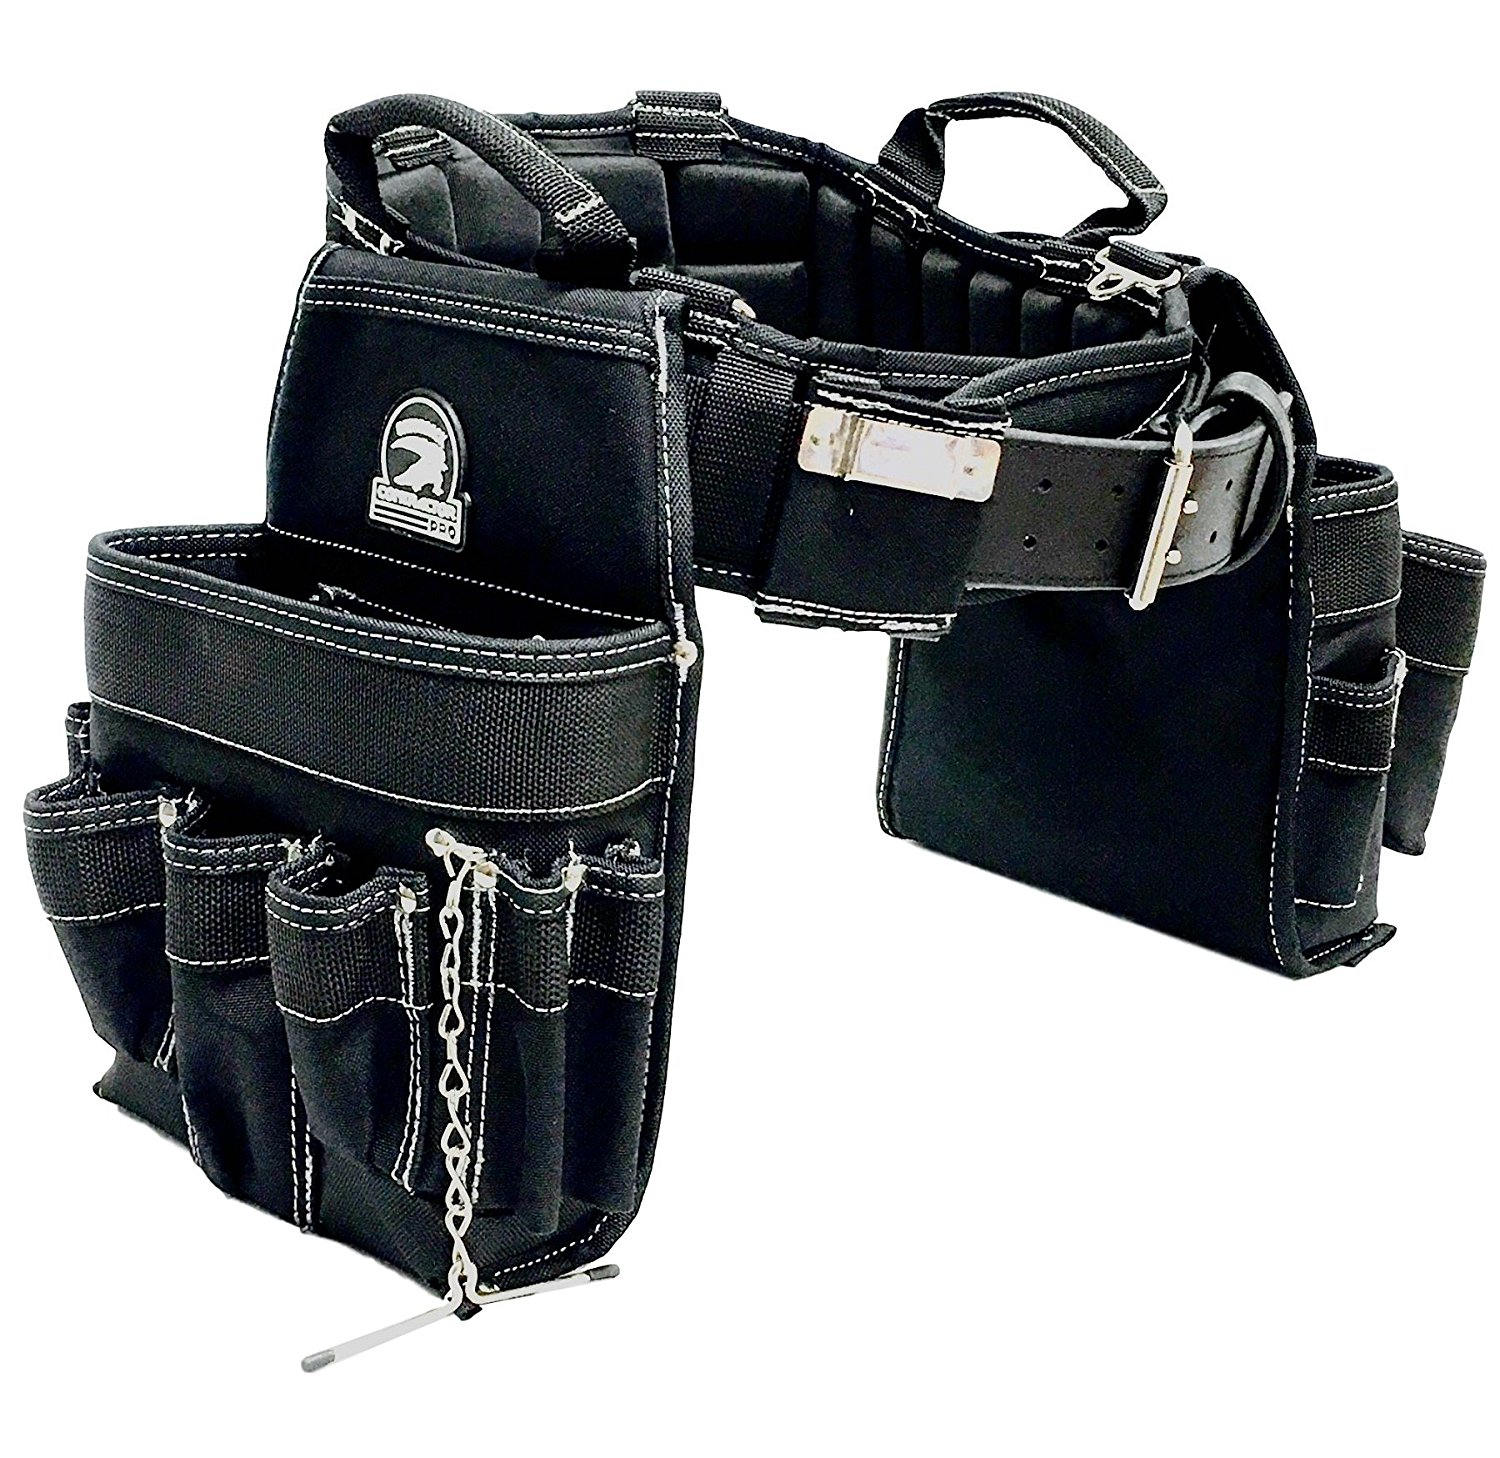 TradeGear Electrician's Tool Belt and Bag Combo